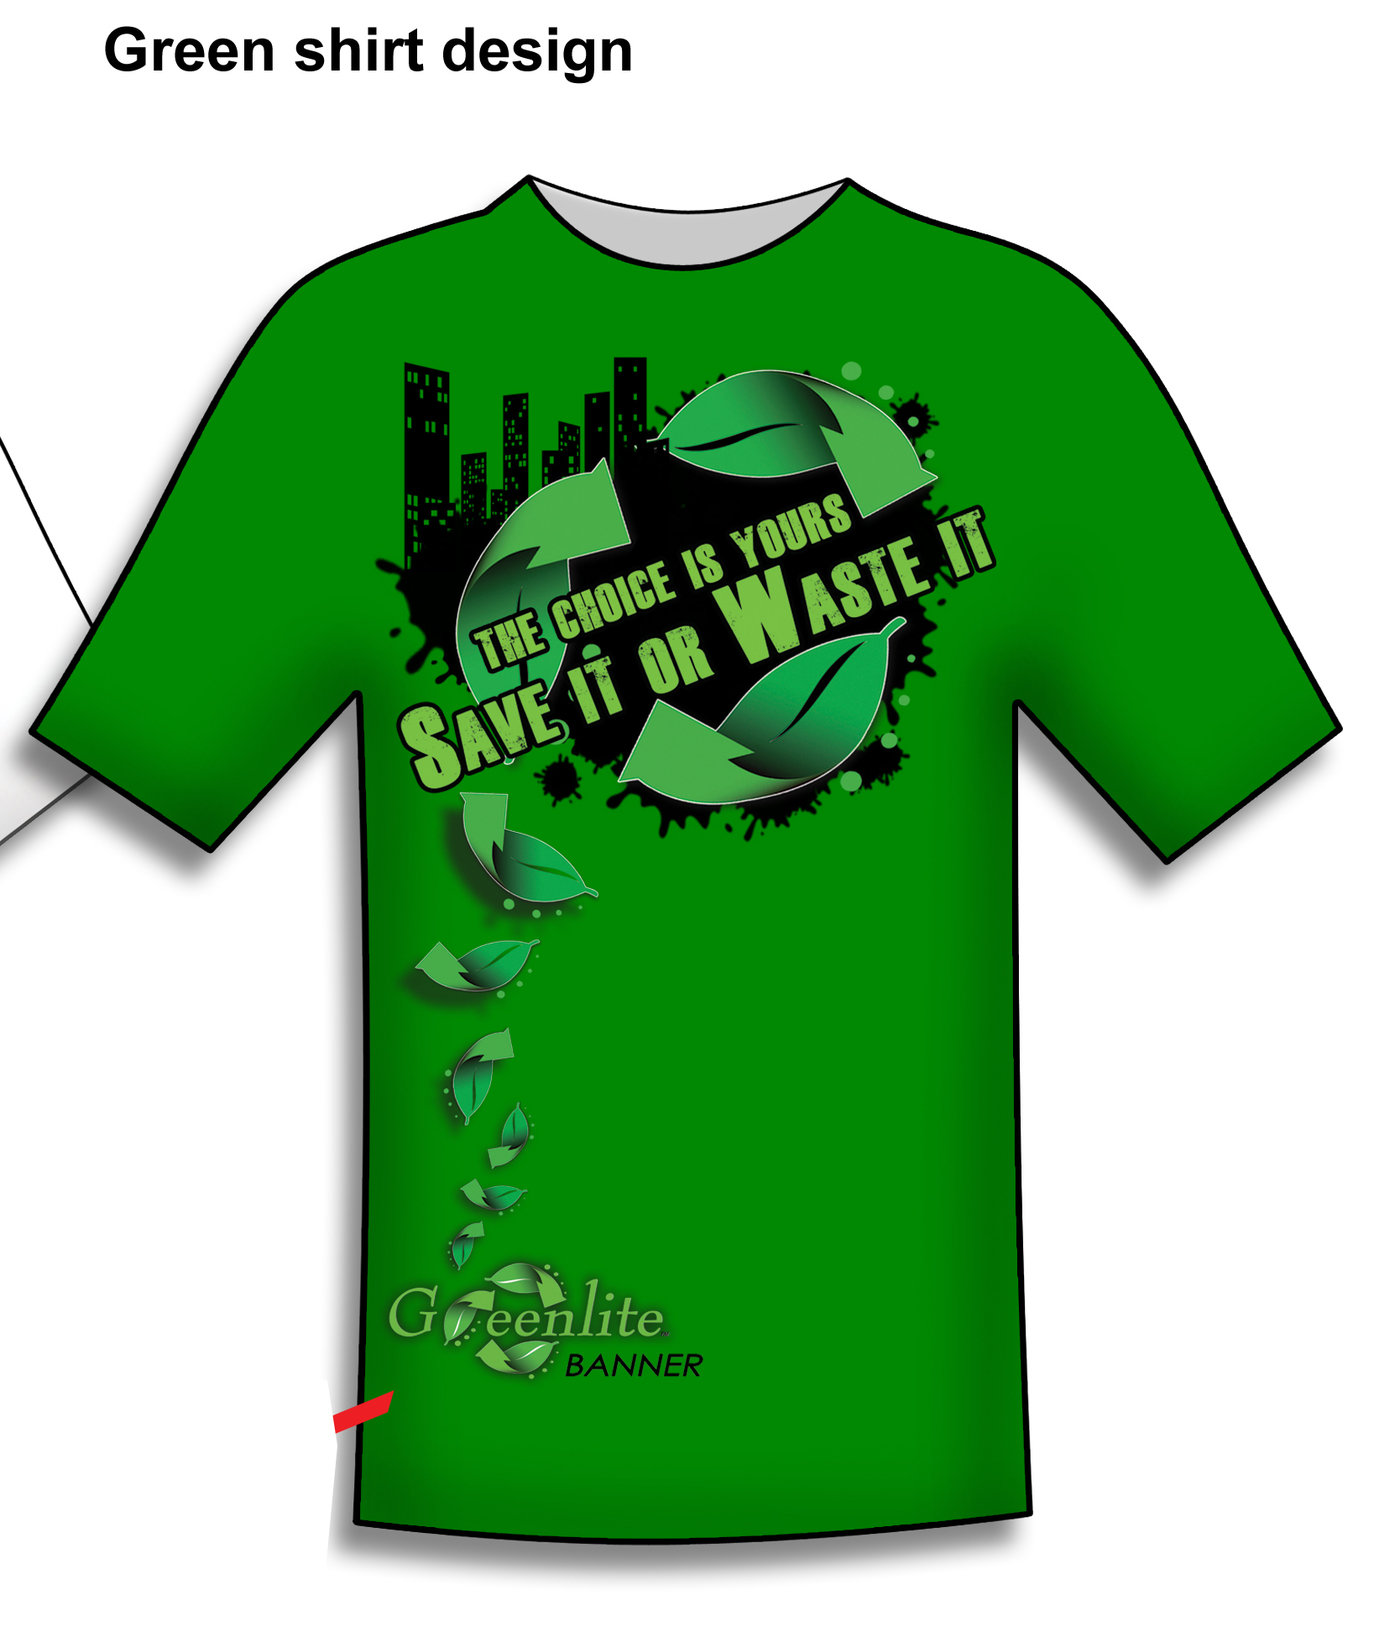 T Shirt Design By 3prince Design Studio At Coroflot